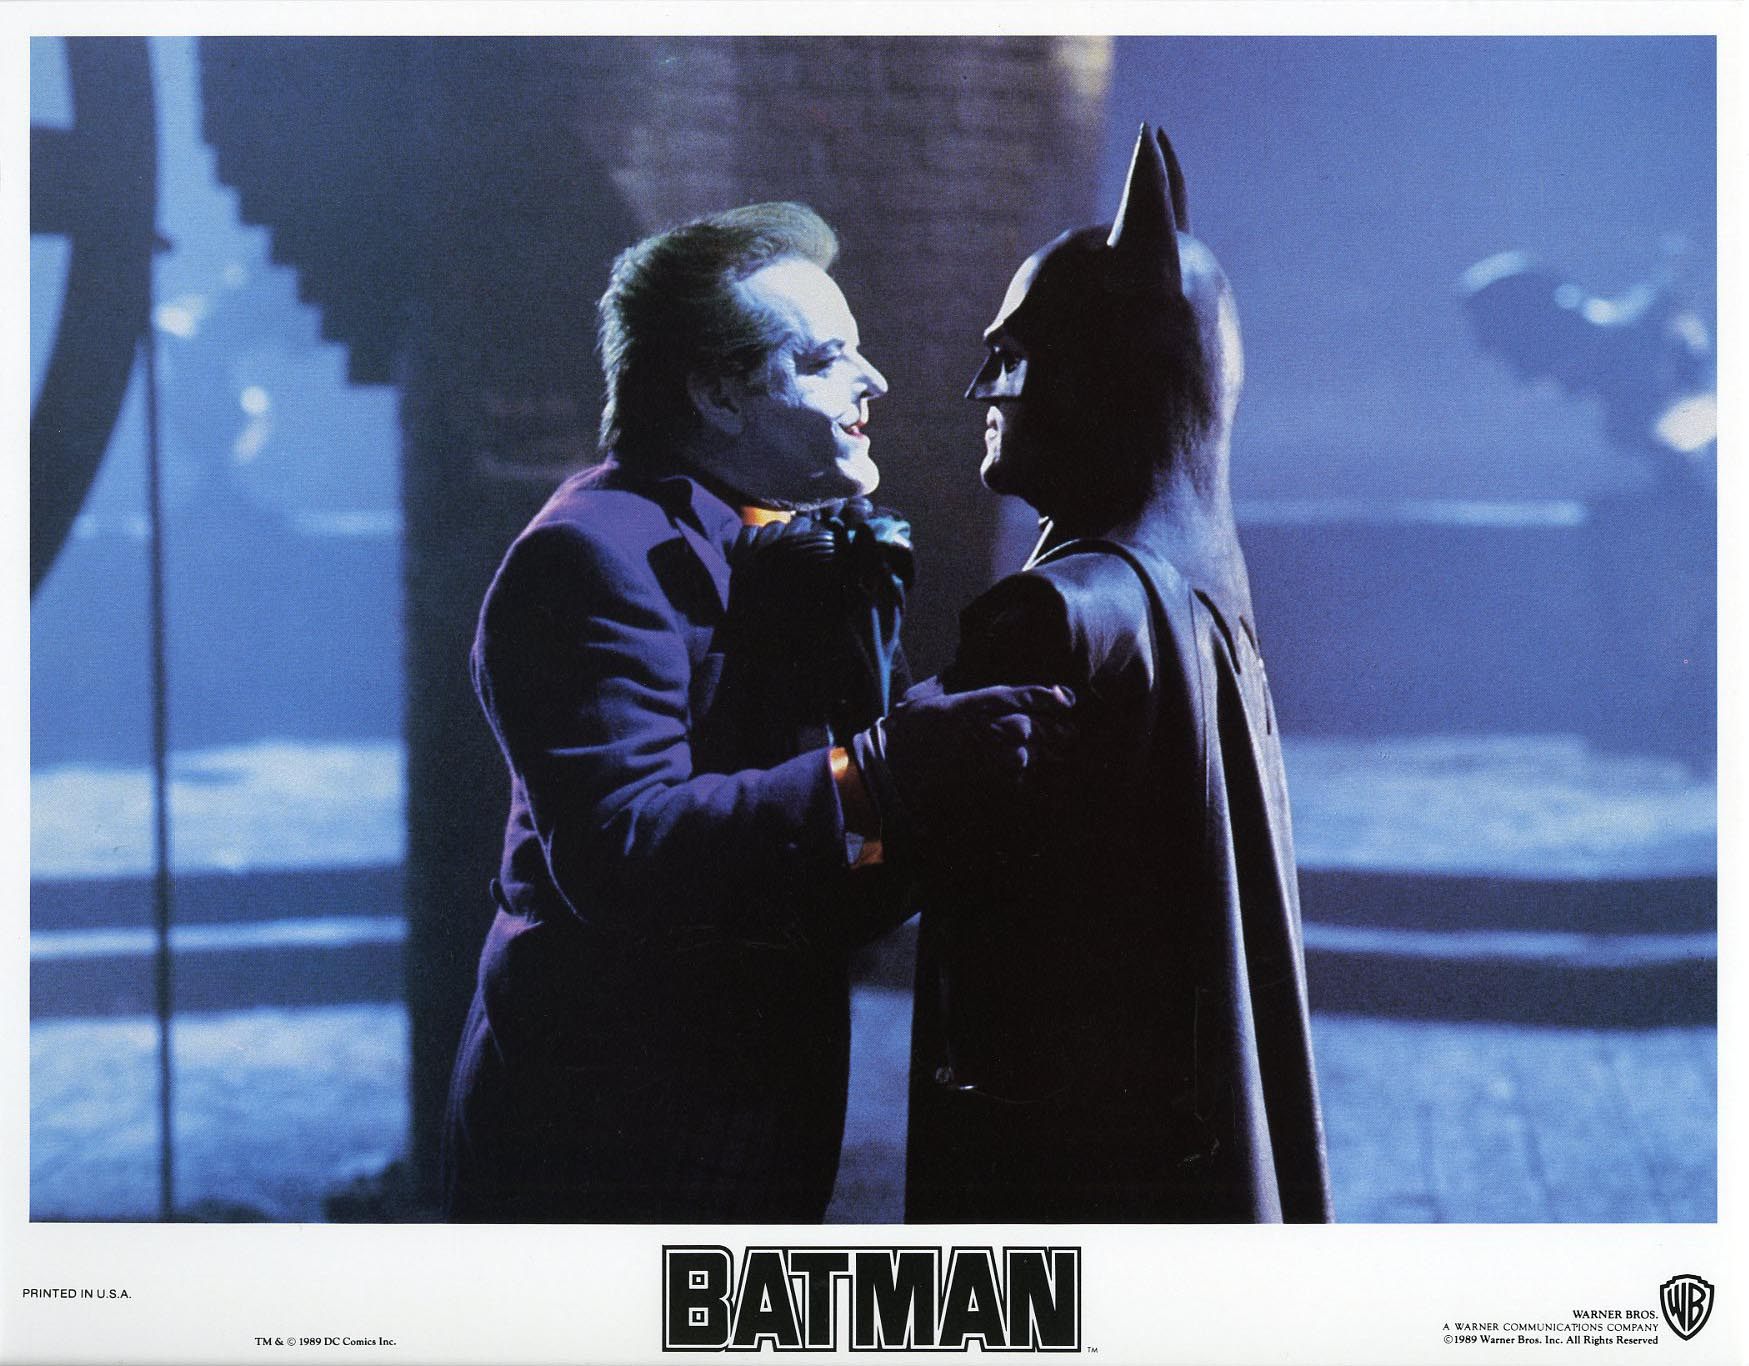 BATMAN WB 1989 Lobby Card Set MICHAEL KEATON NM